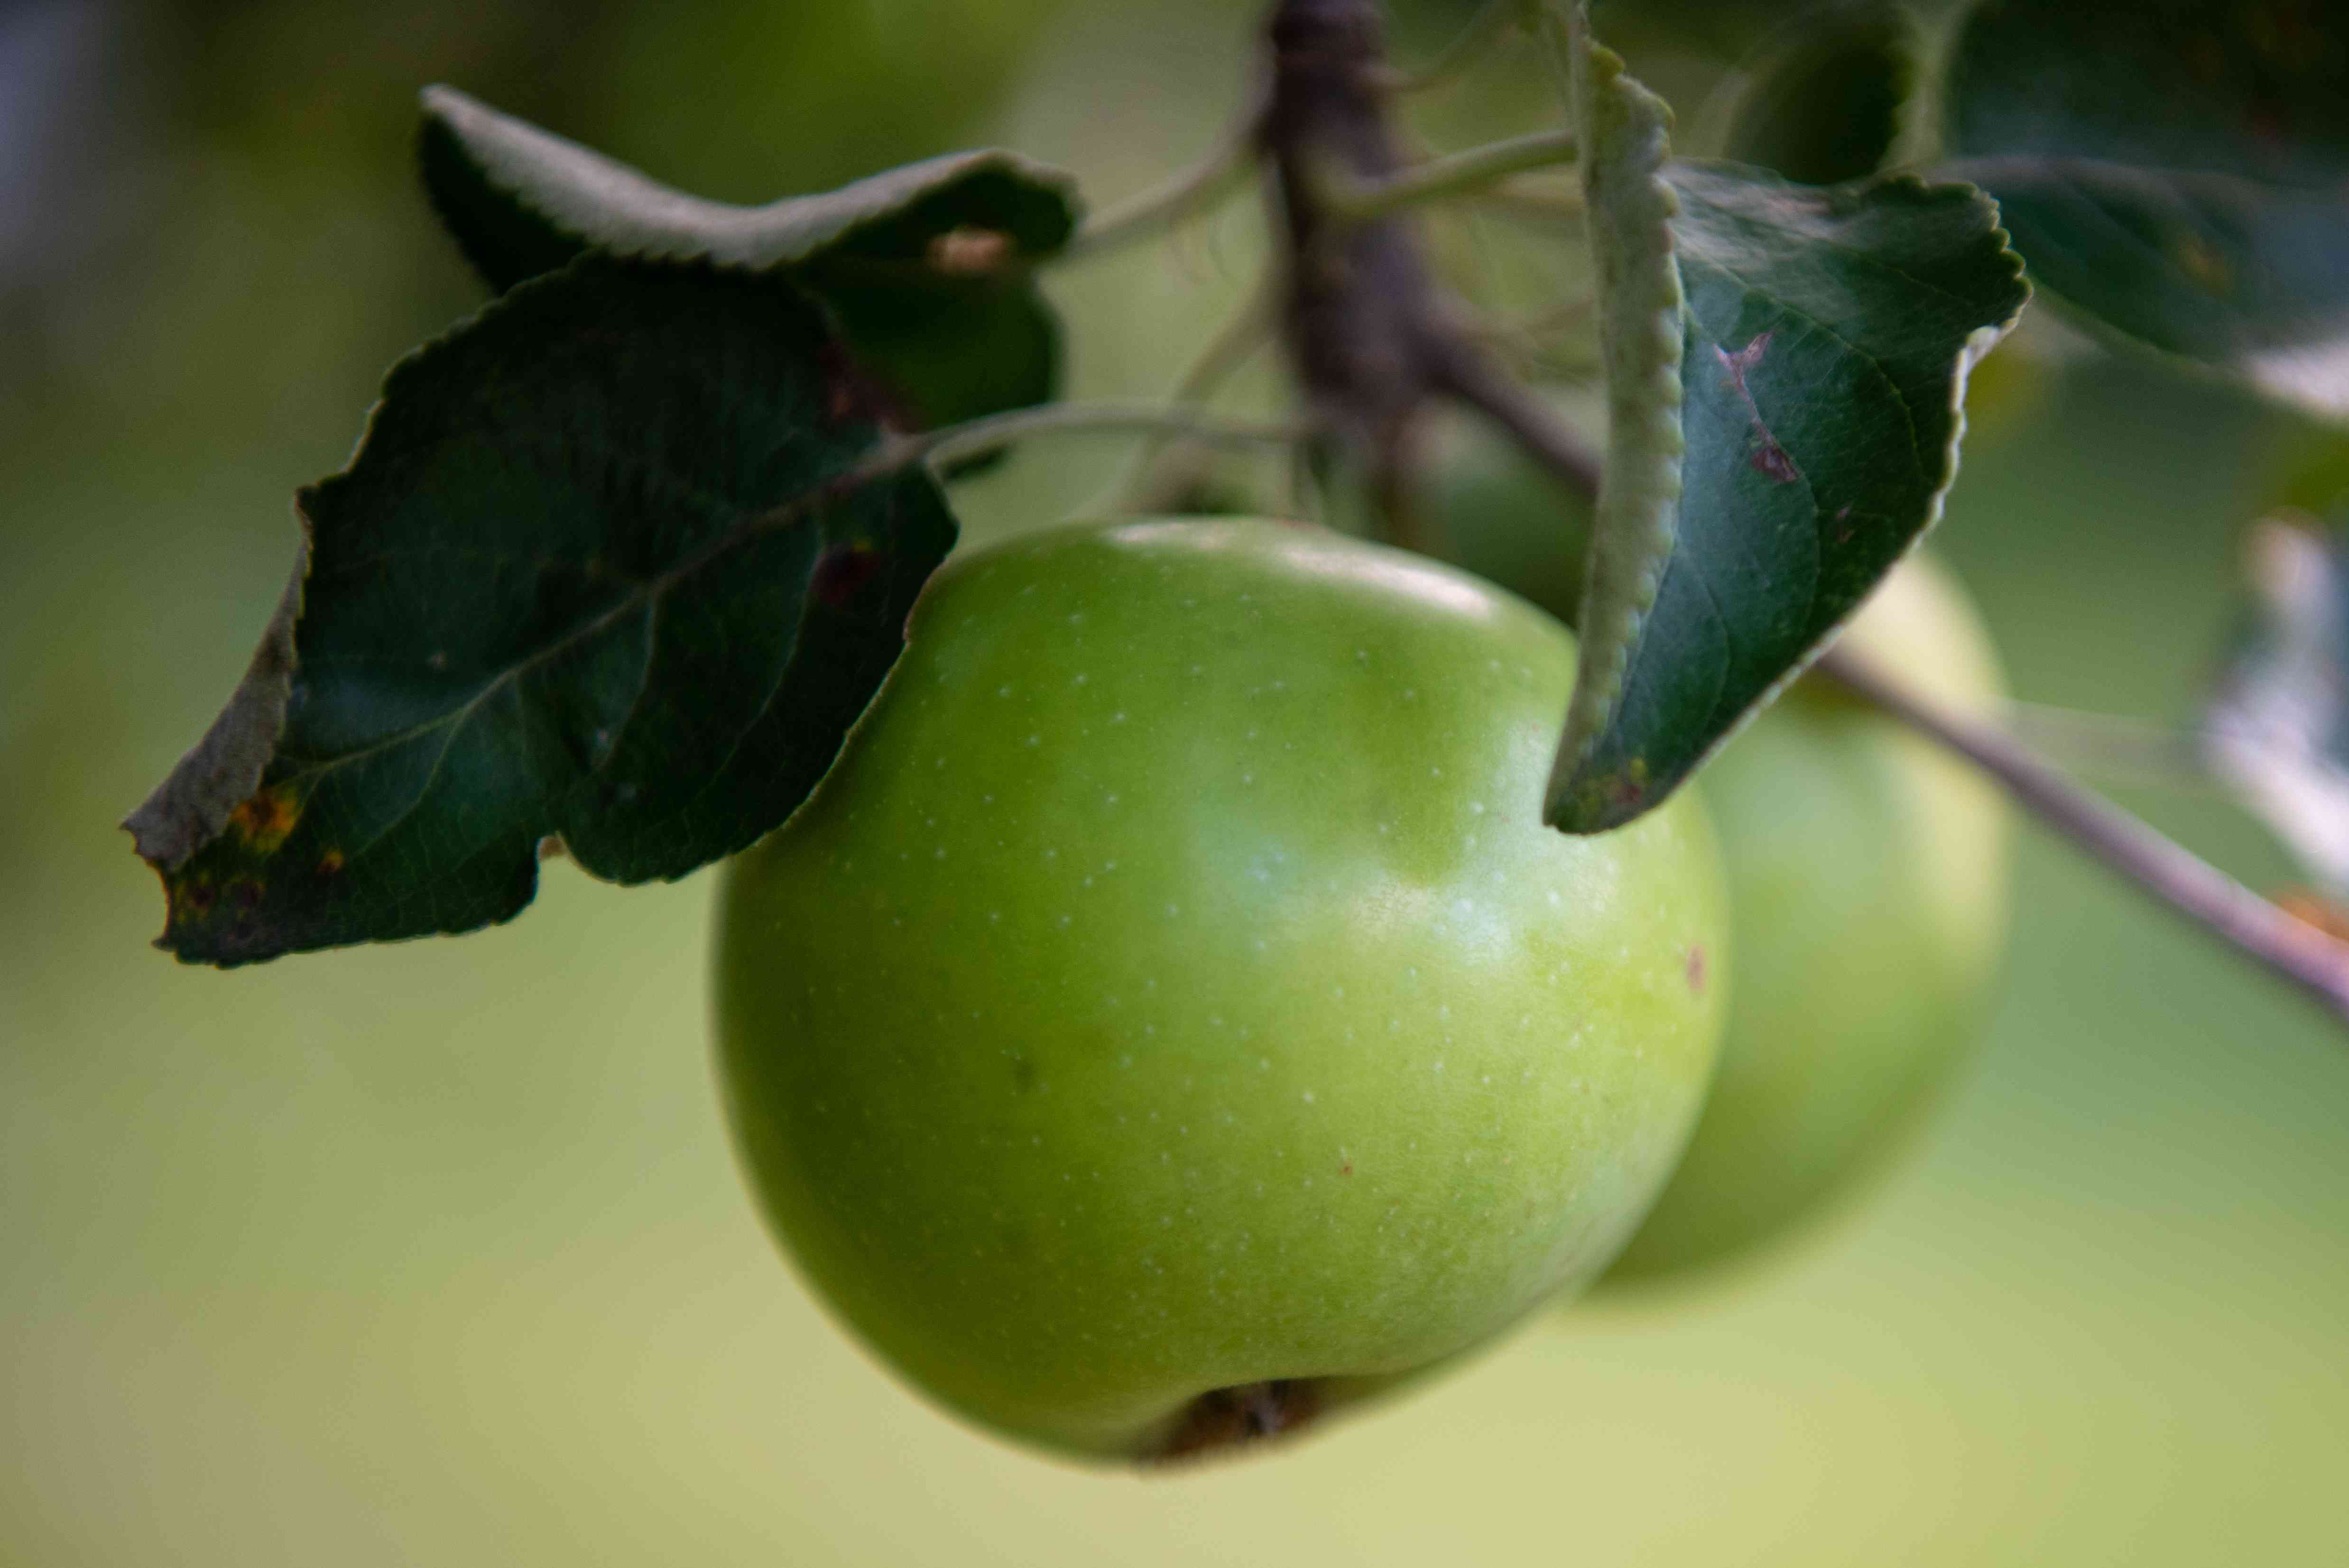 closeup photo of green apple on tree with leaves